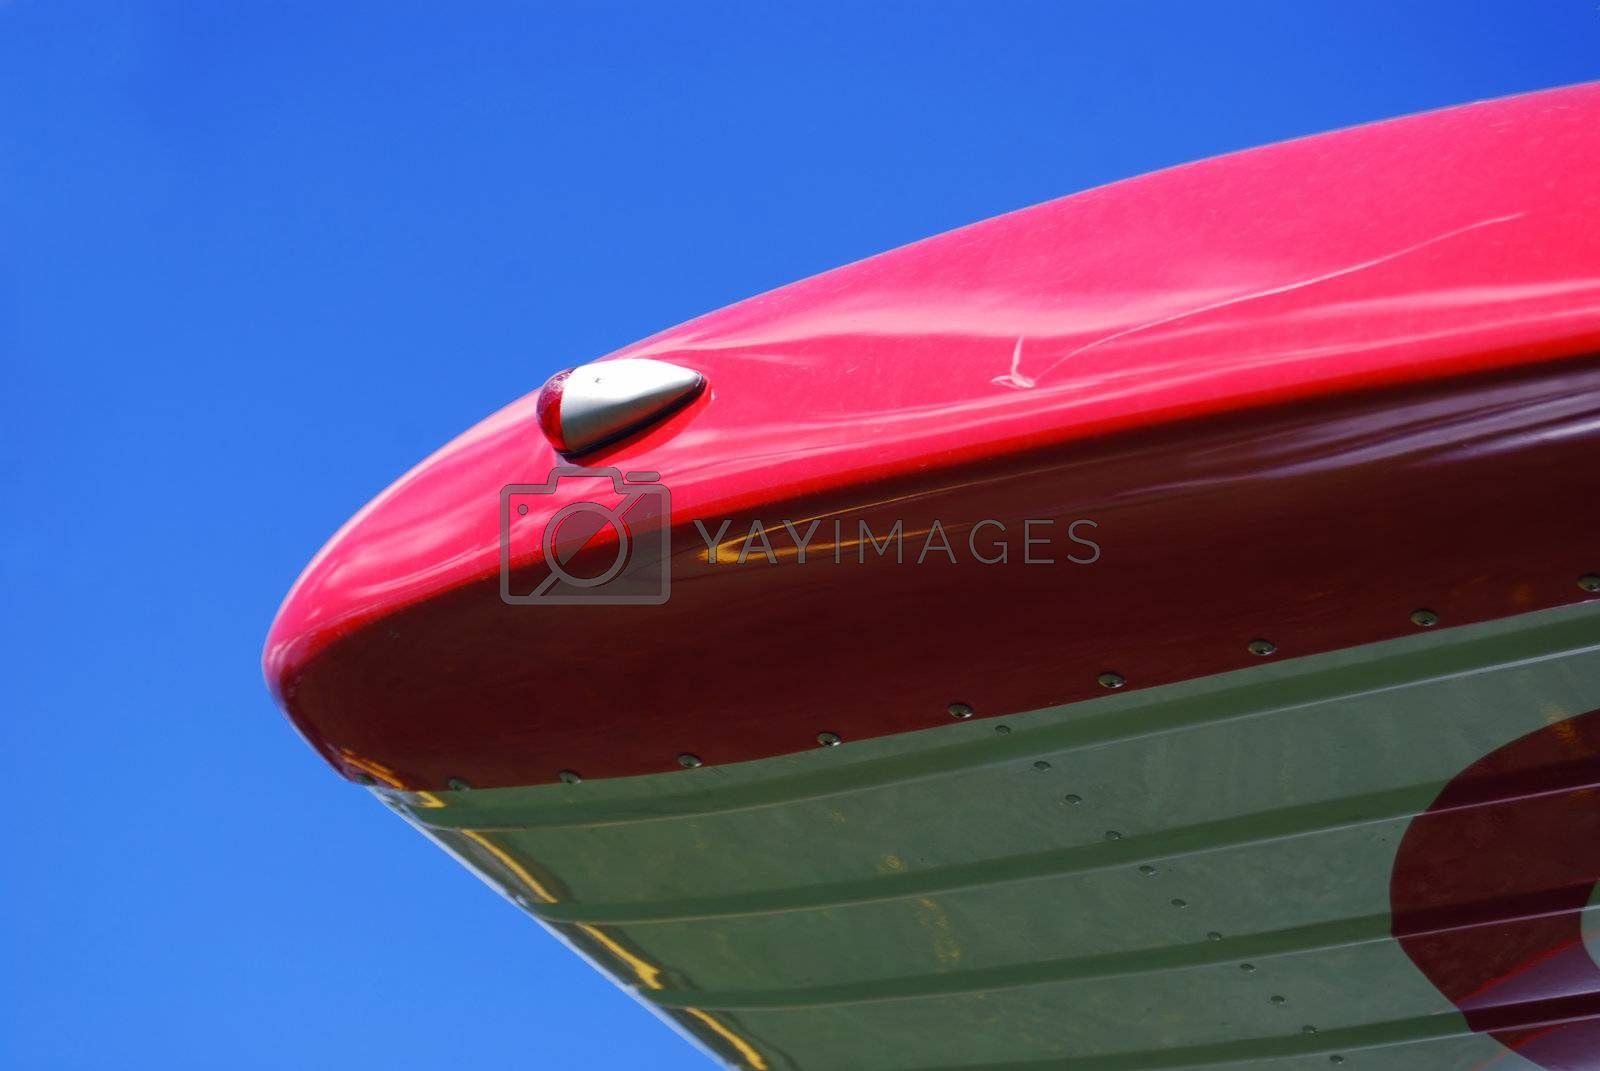 Airplane detail with reflections